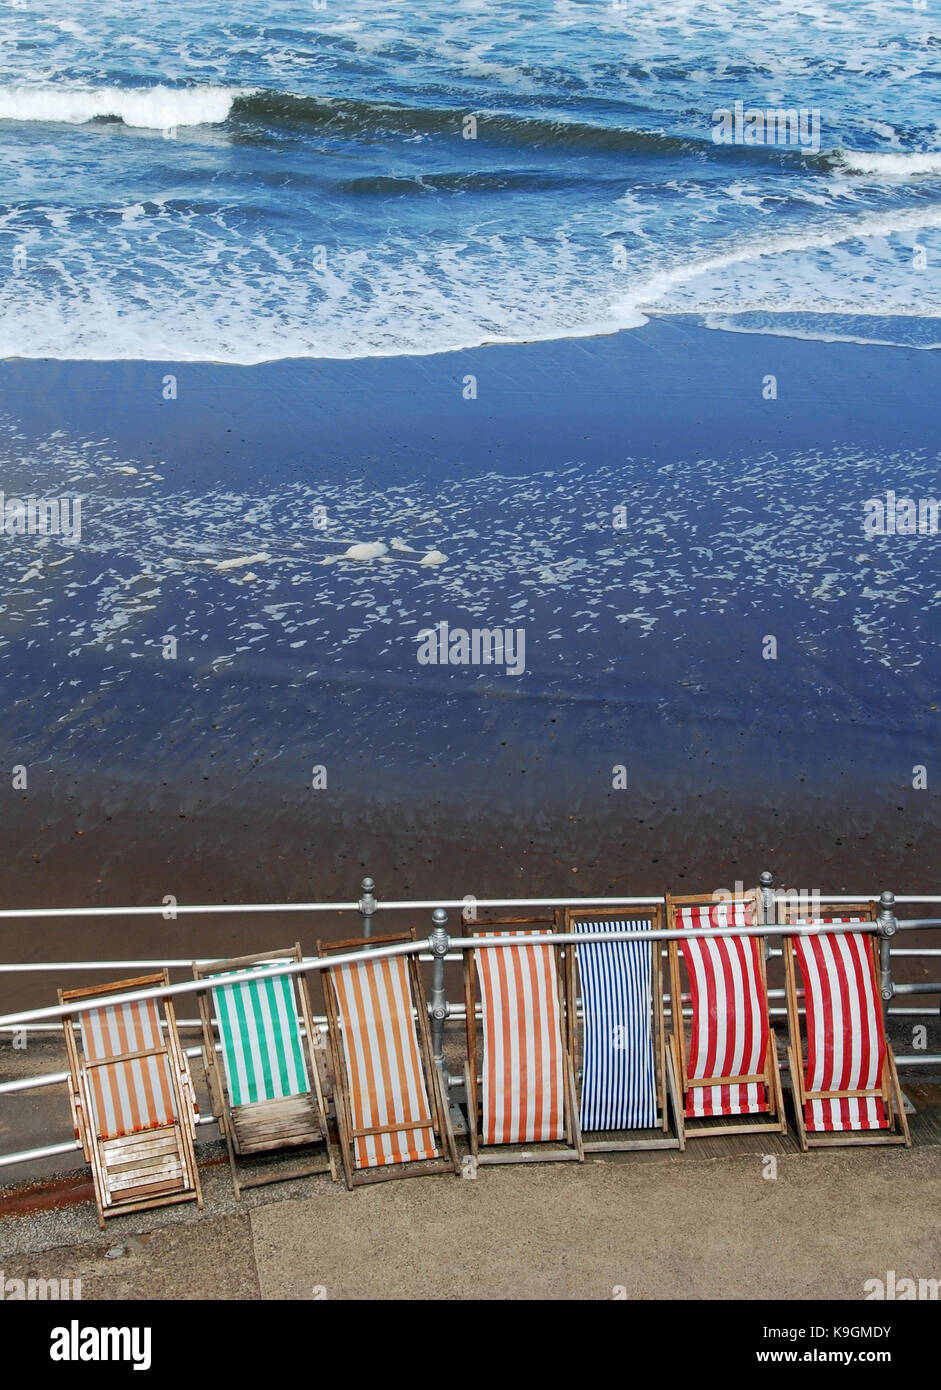 Several folded wood frame deckchairs secured to the railings of a promenade - Stock Image